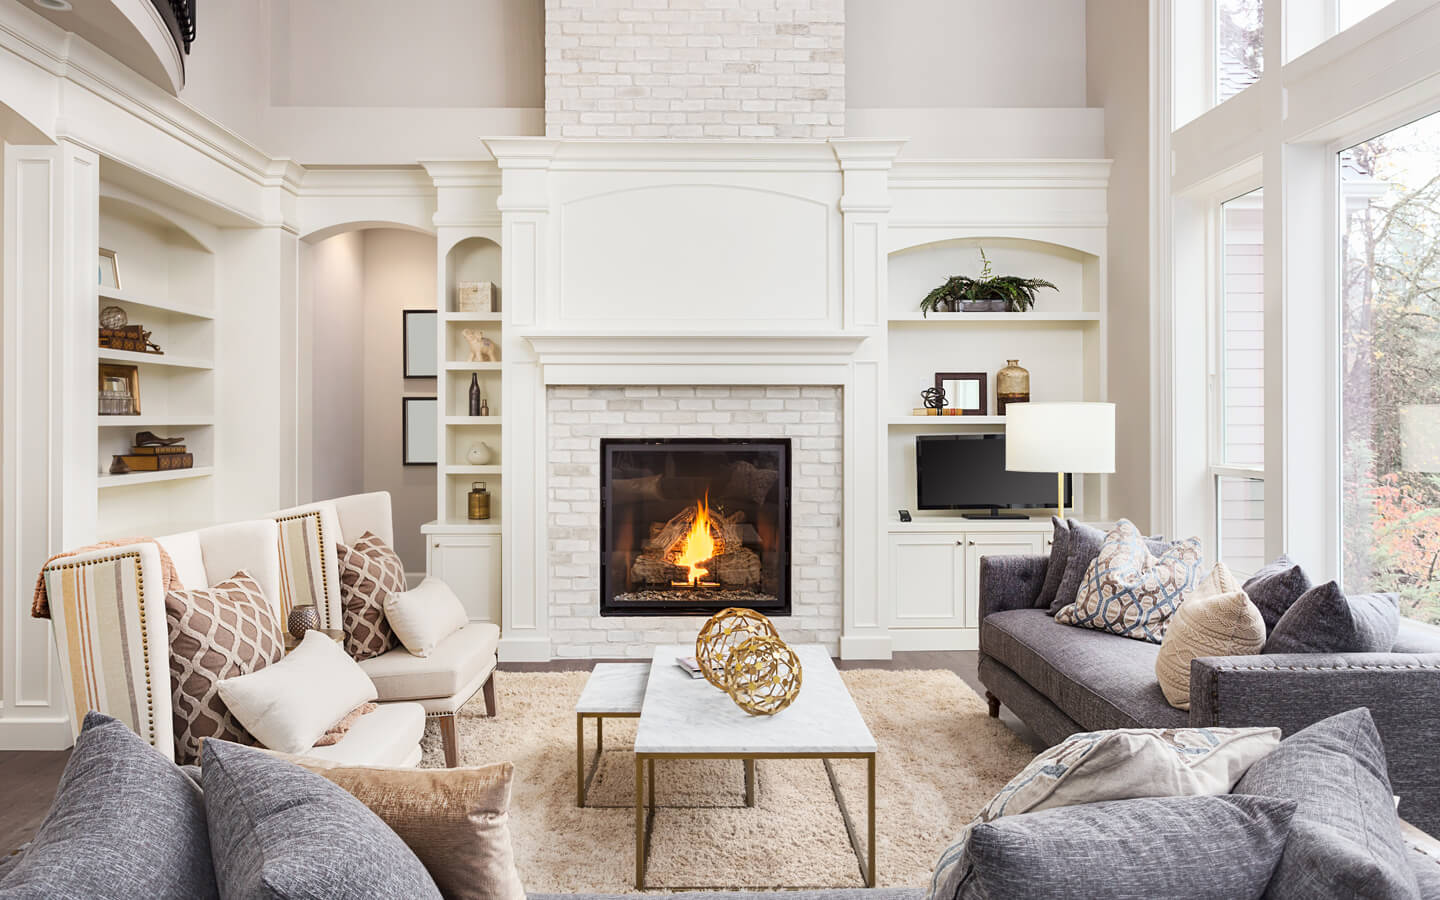 Comfy living room with white bricked fireplace and modern rusty looking furniture